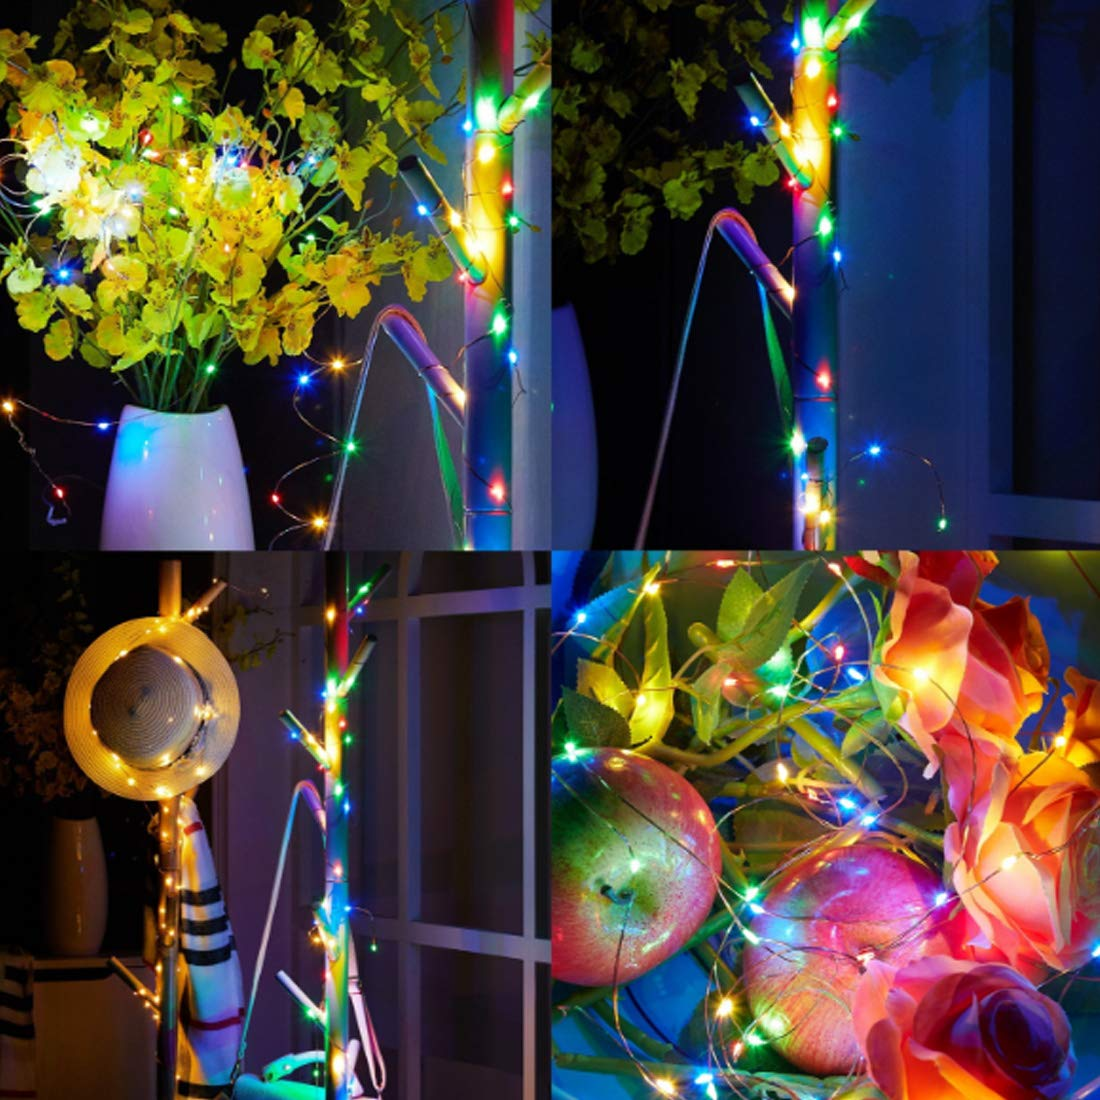 Music String Lights 12 Modes Battery Operated Twinkle String Lights with Remote Timer for Bedroom Wedding Party